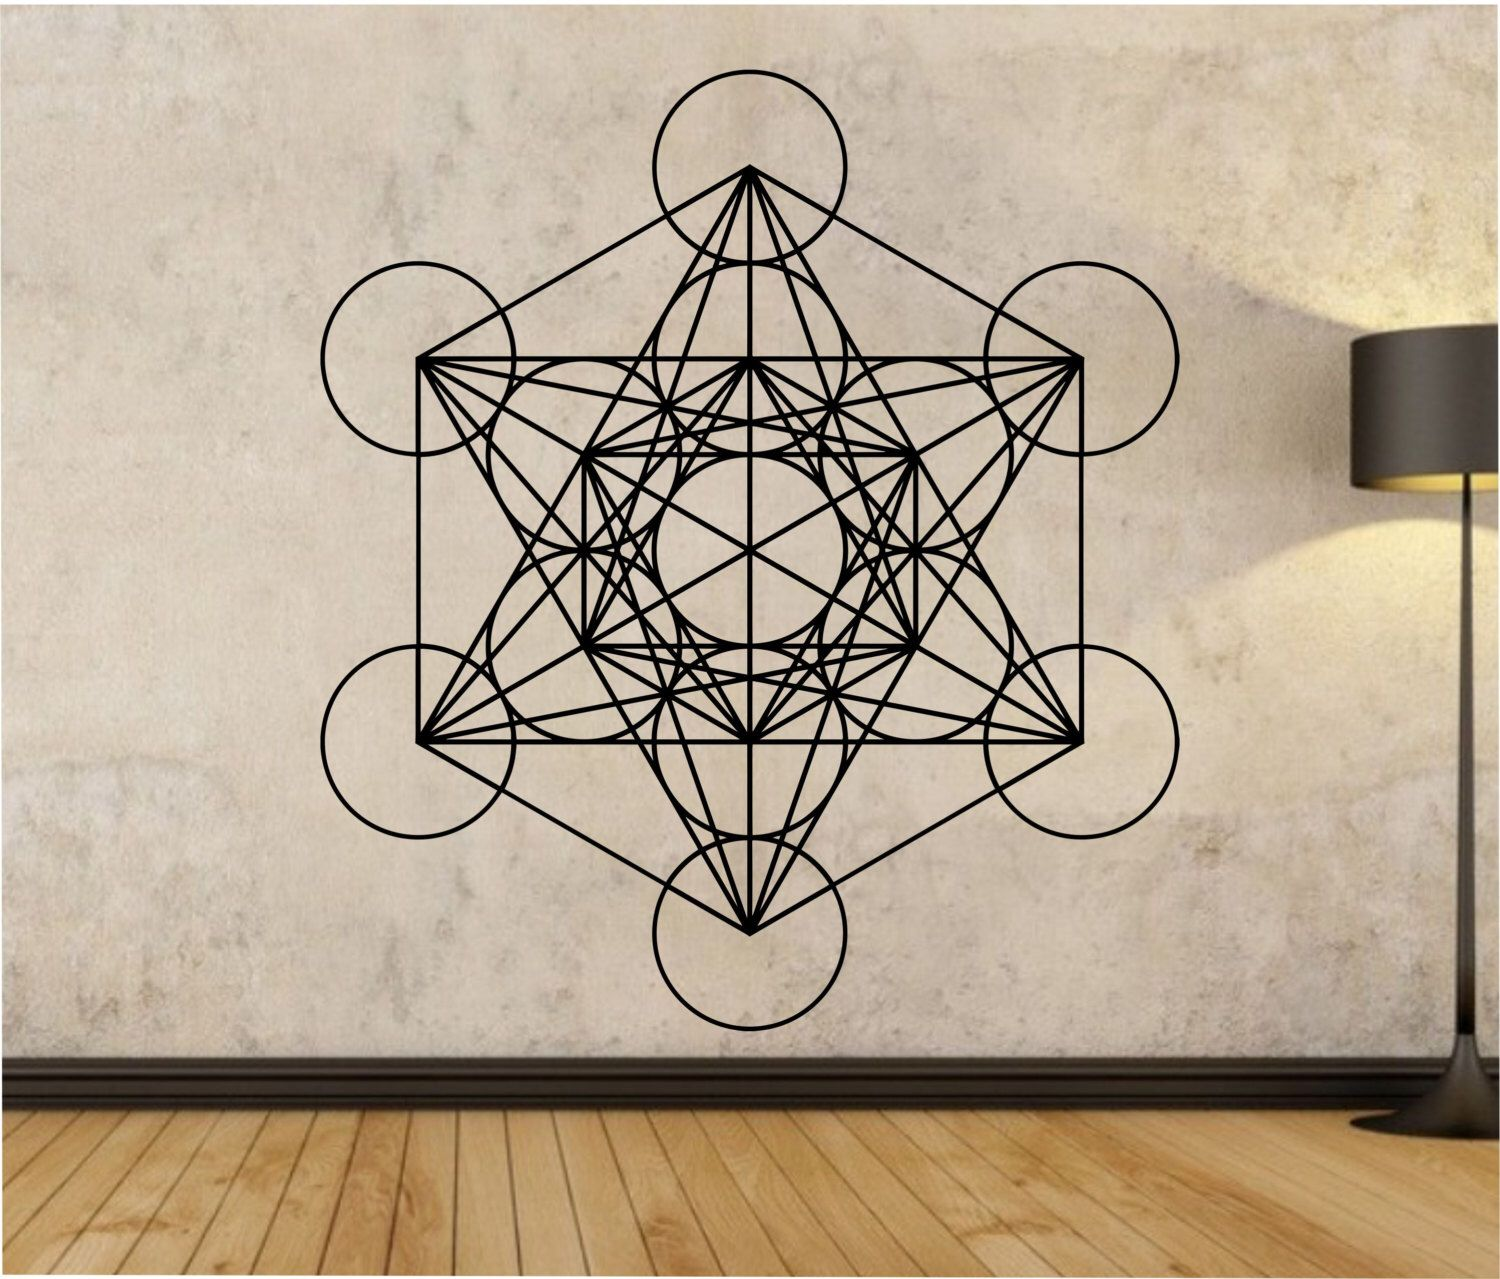 pin by state of the wall on wall decals wall decal sticker flower rh pinterest com cube wall decor shelf cube wall decor